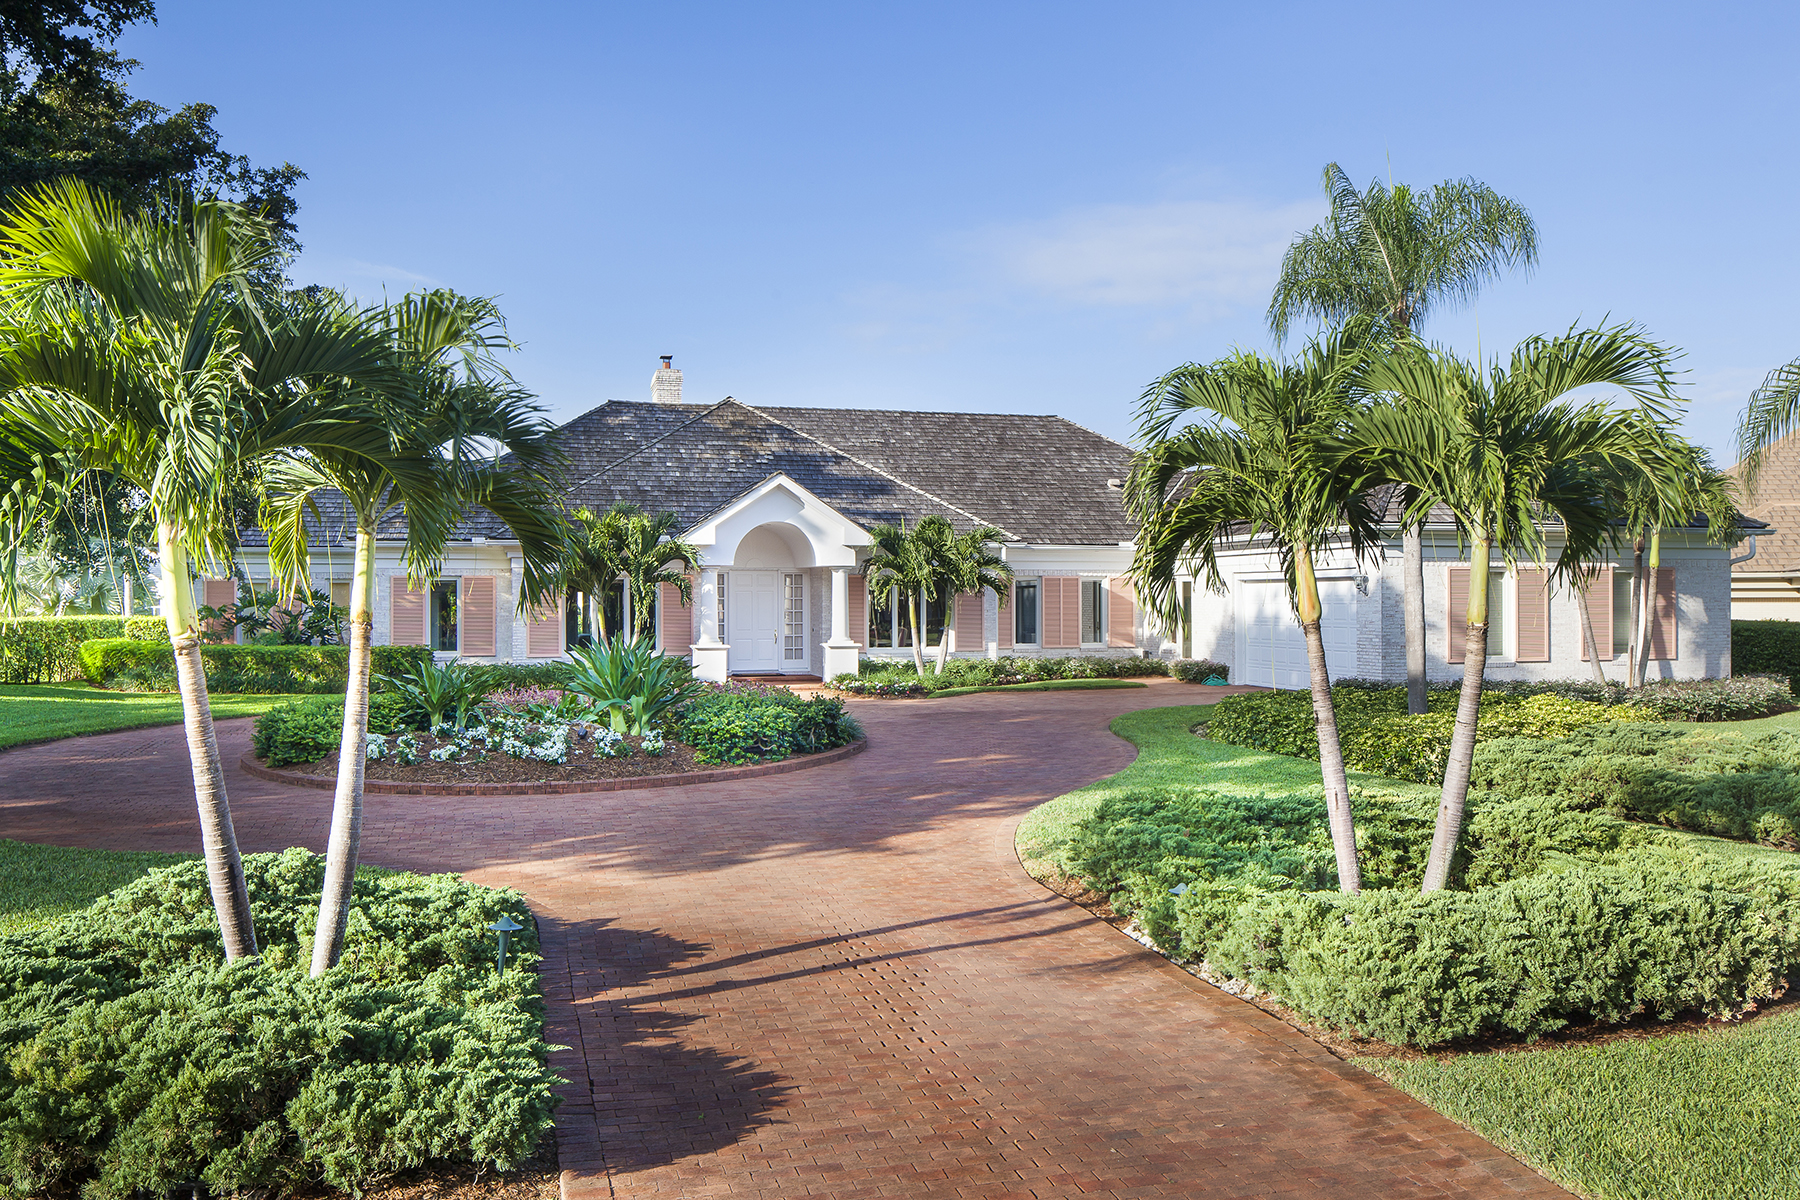 Single Family Home for Sale at PELICAN BAY - PINECREST 6609 Ridgewood Dr Naples, Florida, 34108 United States